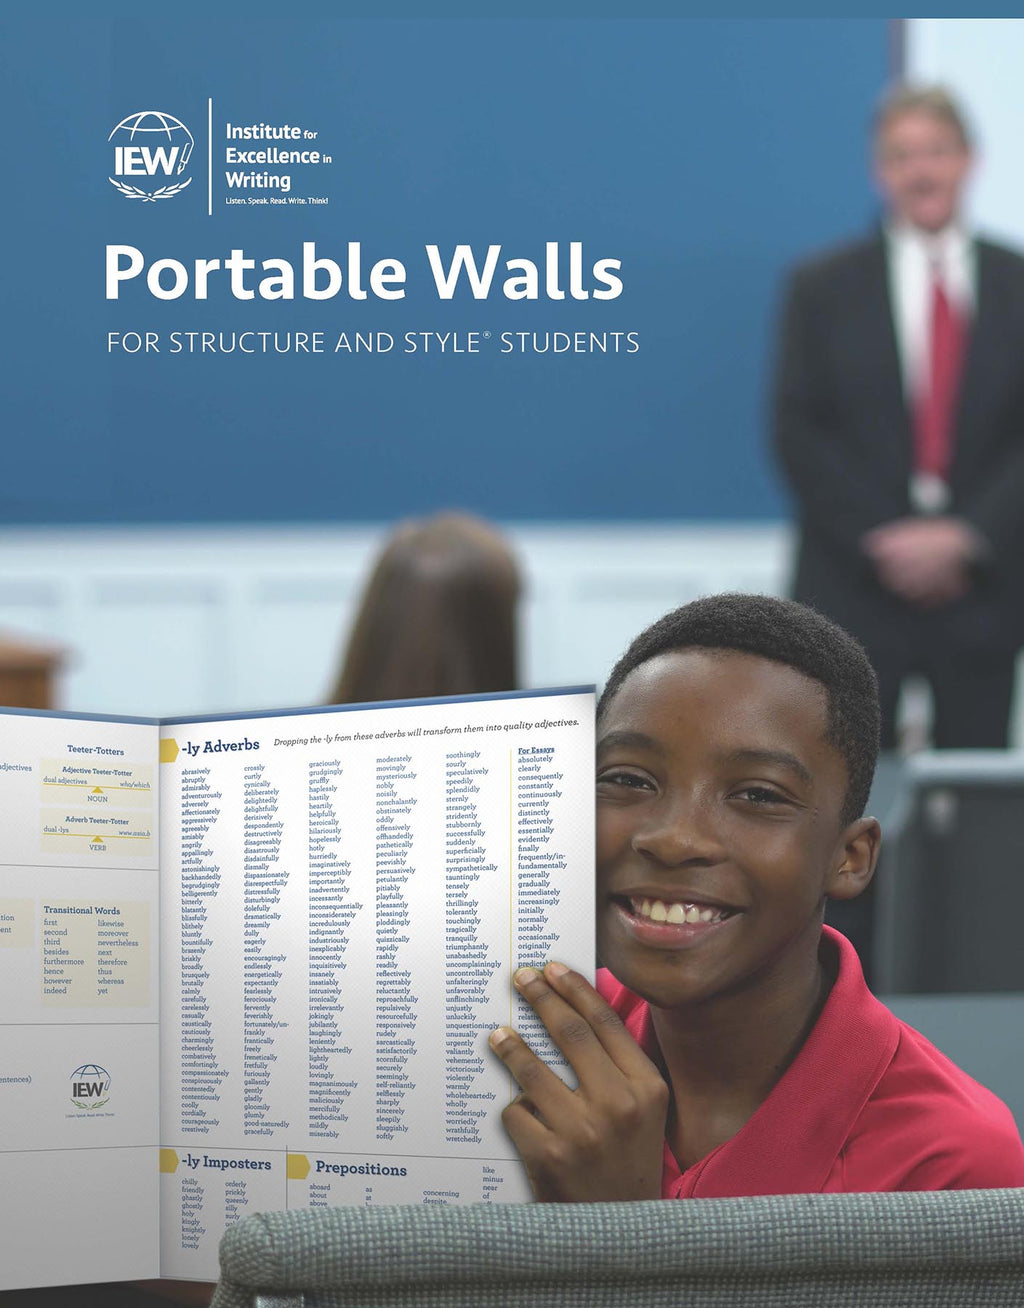 IEW PORTABLE WALLS - temporarily out of stock